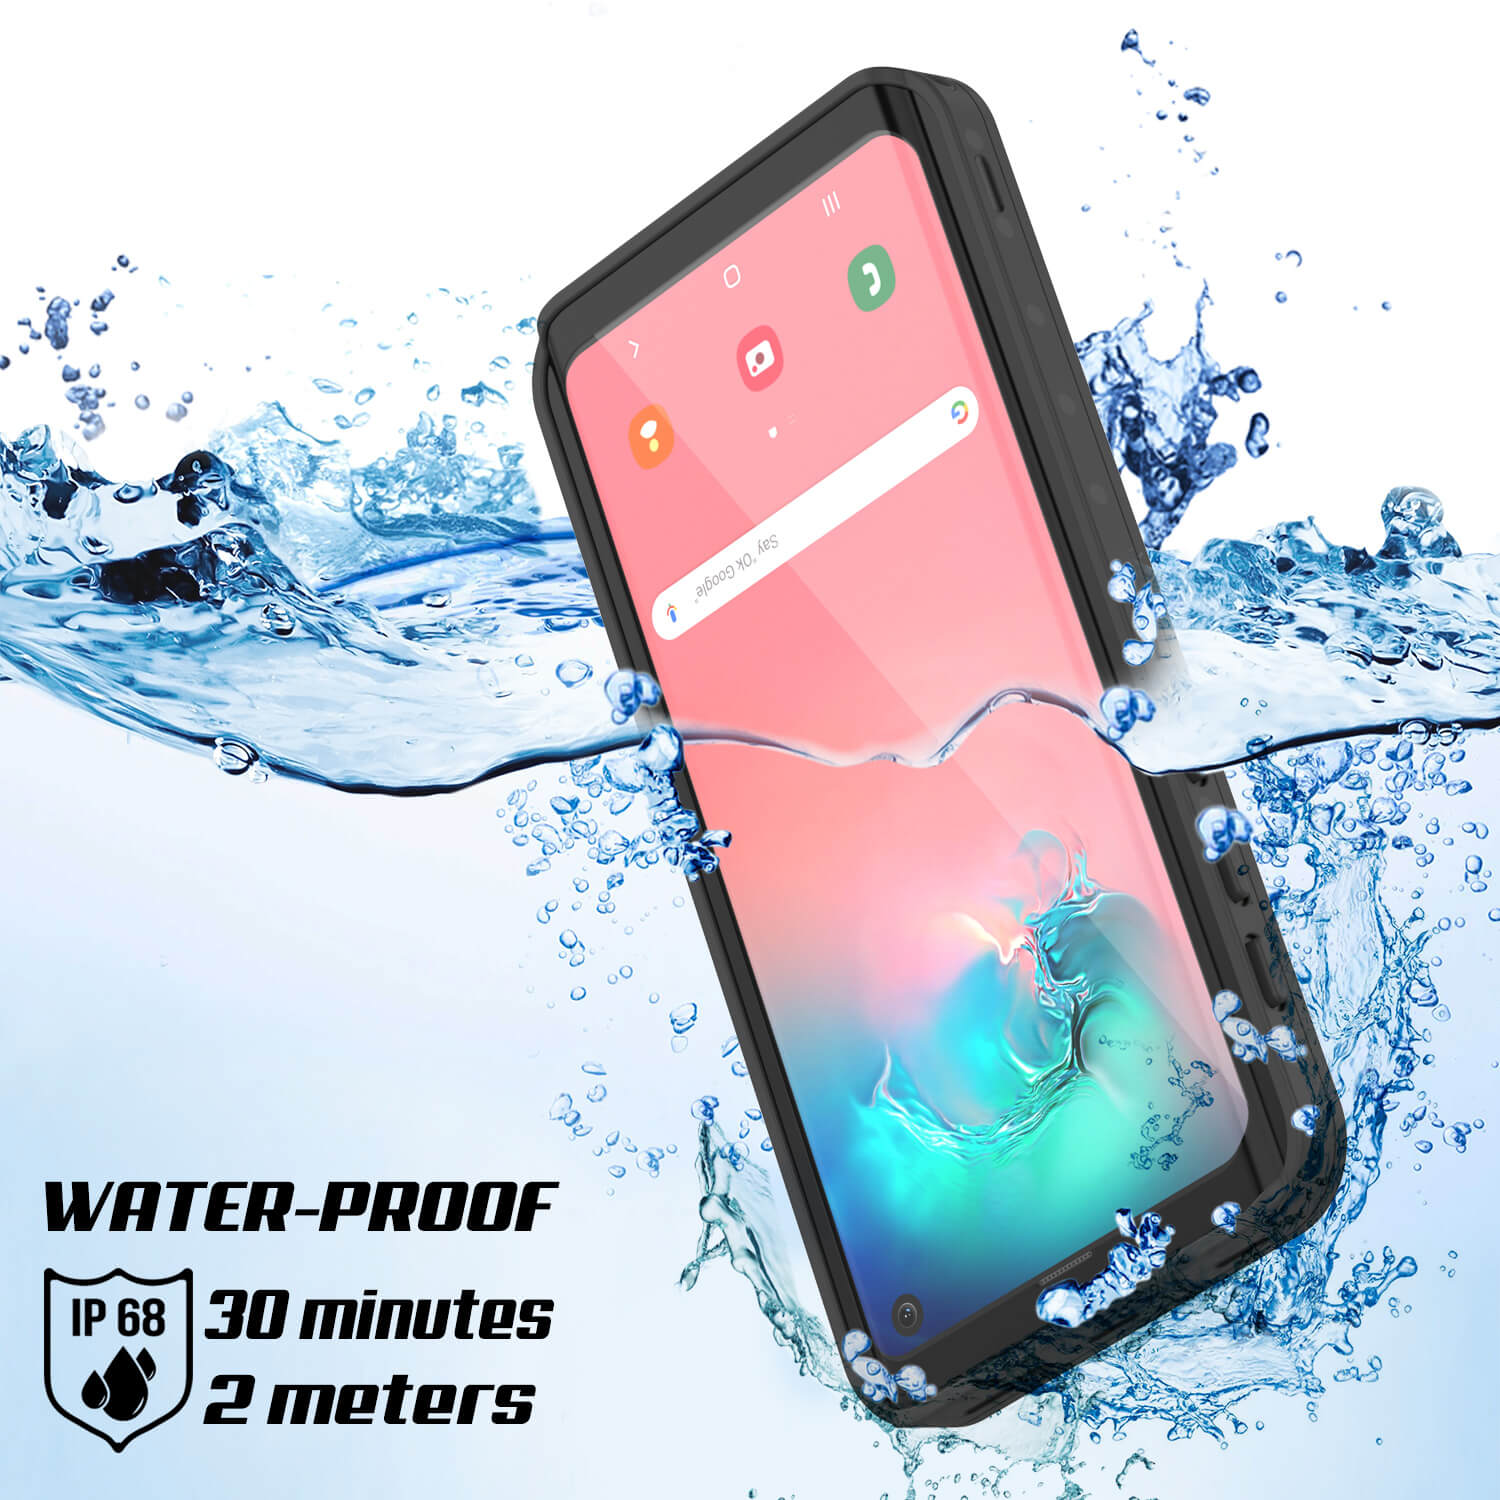 Galaxy S10 Waterproof Case PunkCase StudStar Clear Thin 6.6ft Underwater IP68 Shock/Snow Proof